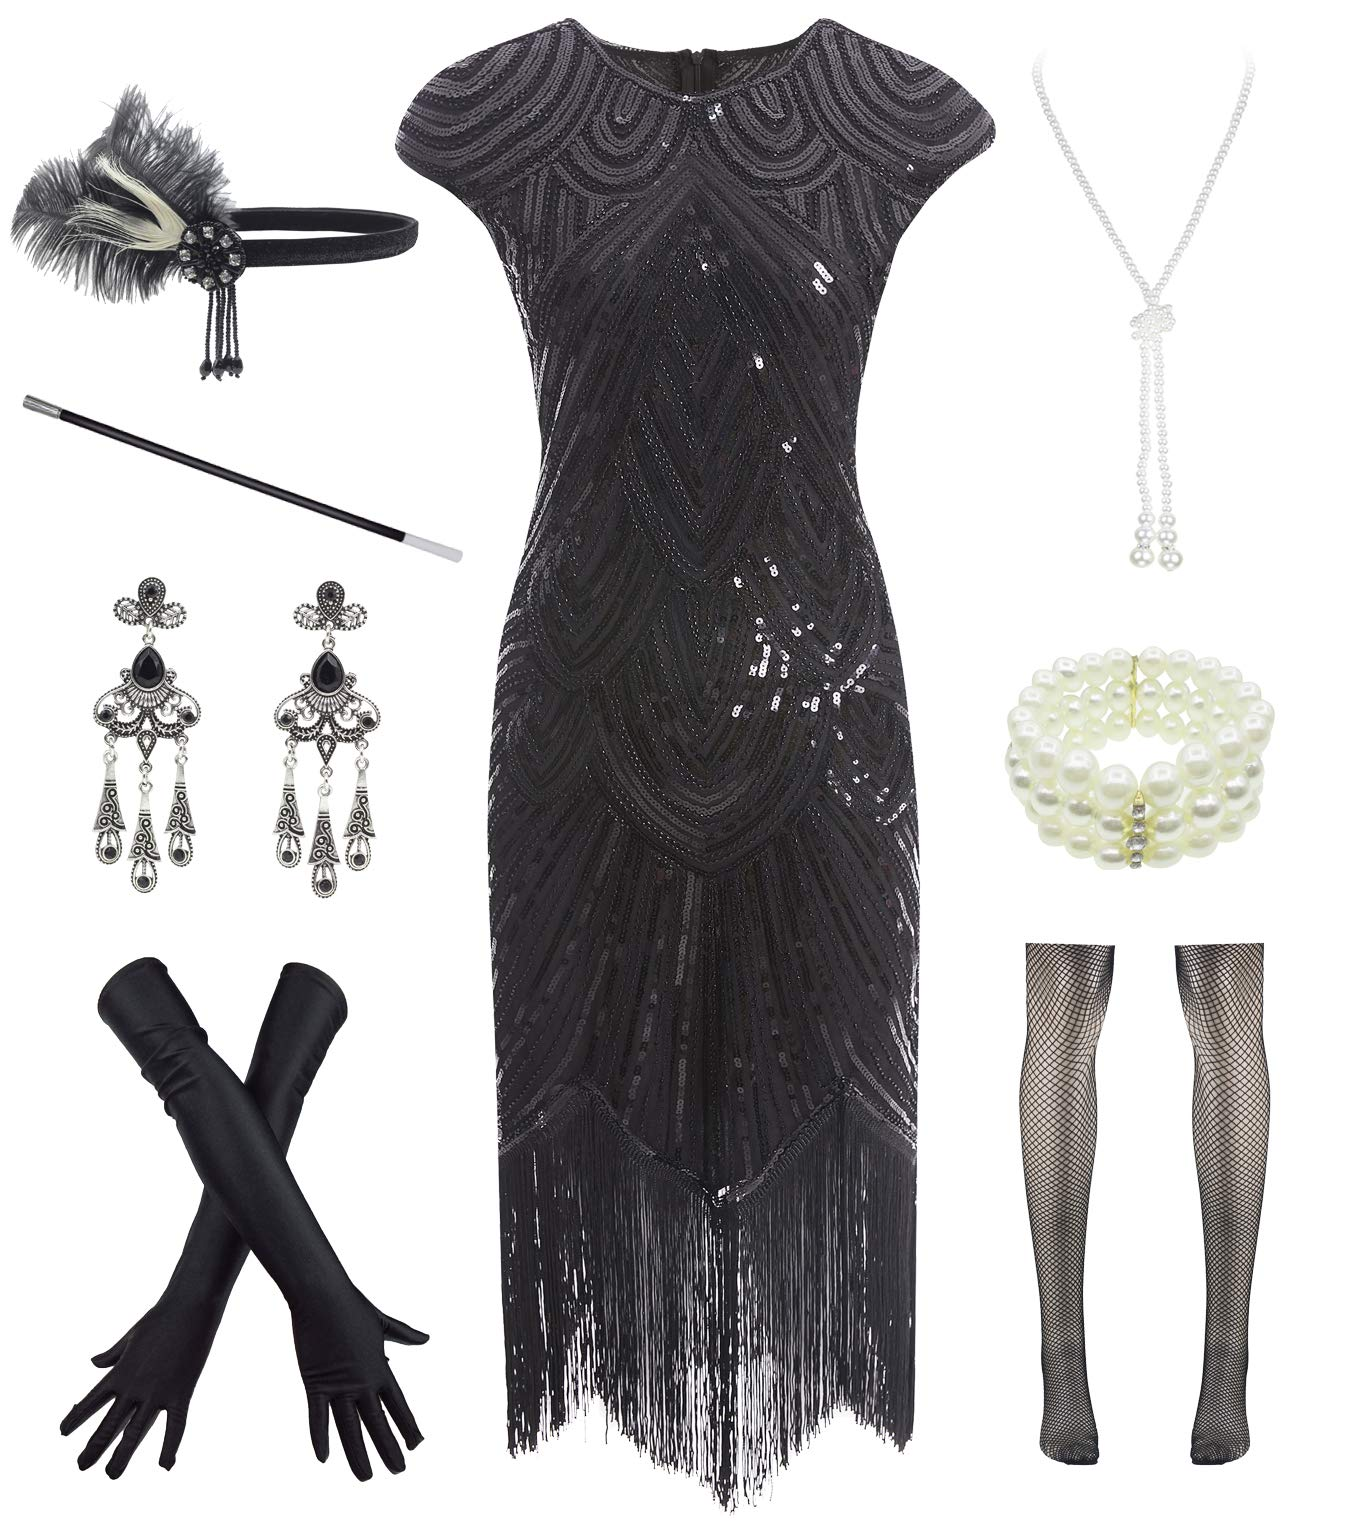 Party Dresses - Women 1920s Vintage Flapper Fringe Beaded Gatsby Party Dress With 20s Accessories Set